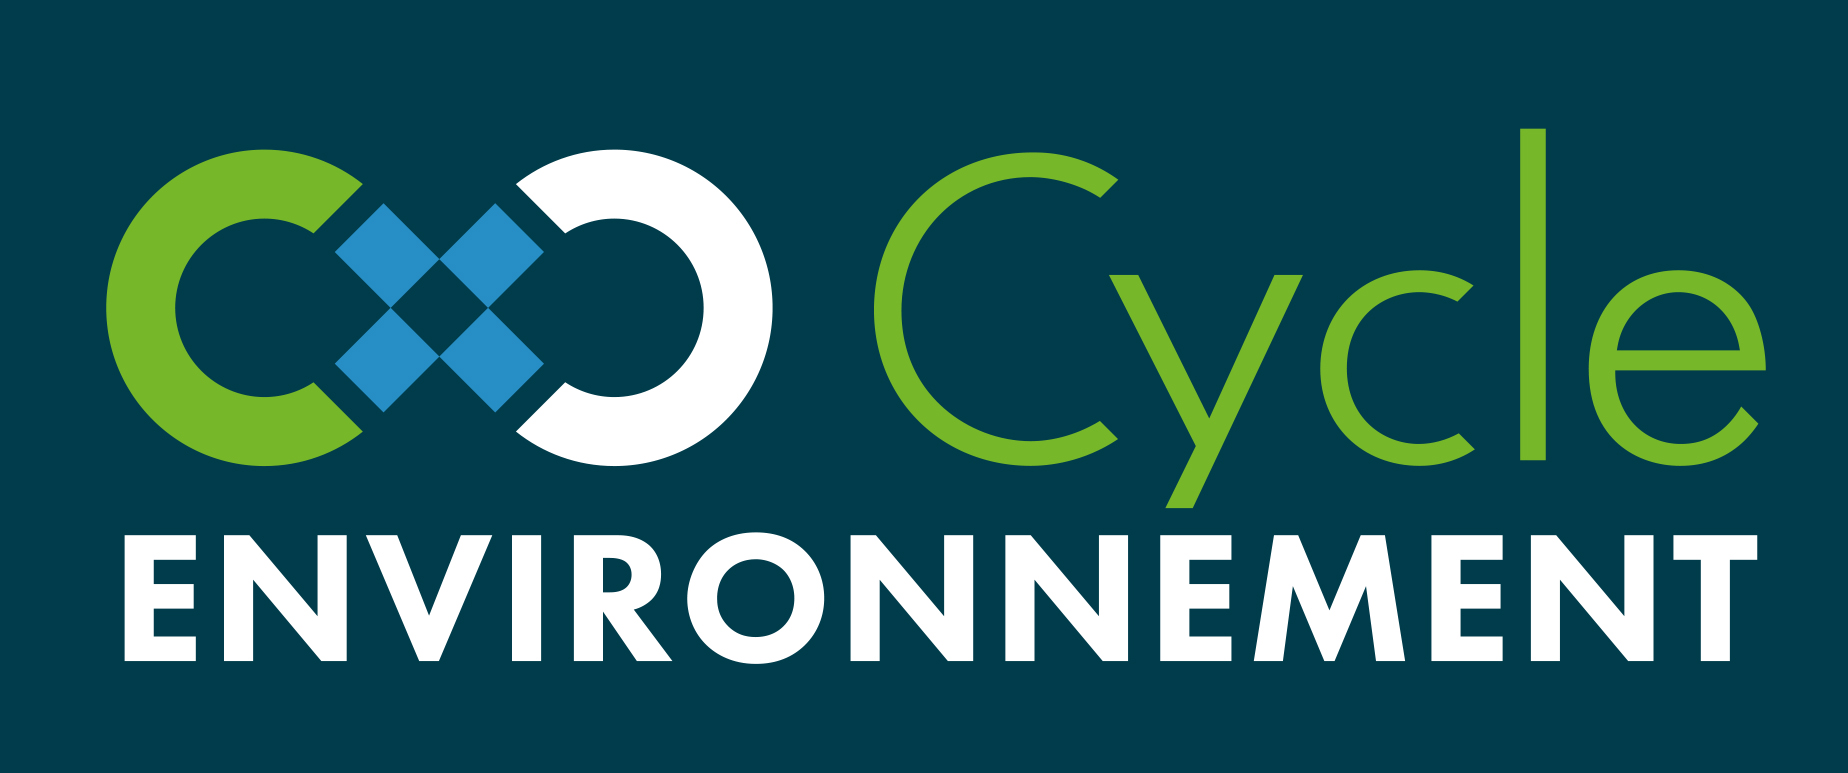 Cycle environnement